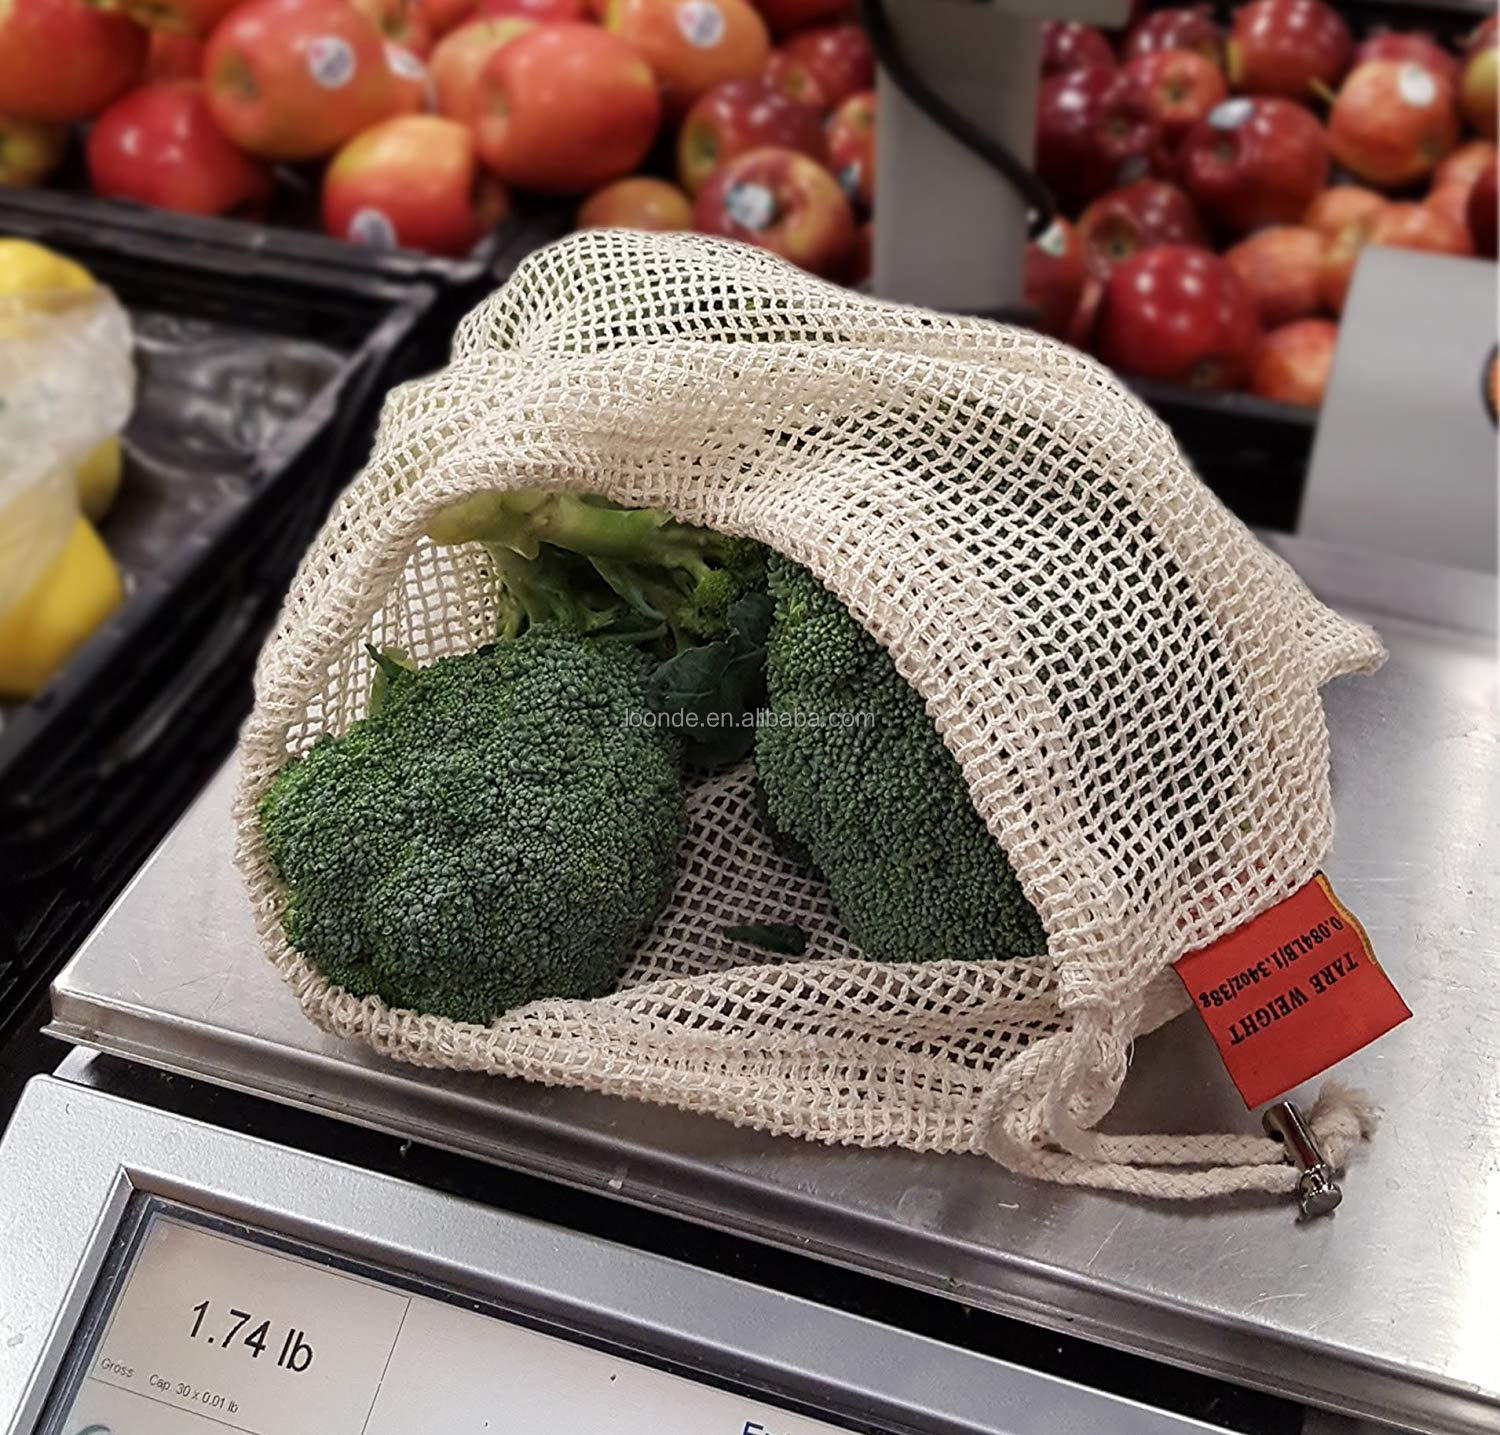 Reusable Produce Bags Organic Cotton Vegetable Bags Mesh Cotton Veggie Bags Fresh Bags  Set of 6 (2 of M, L, XL)